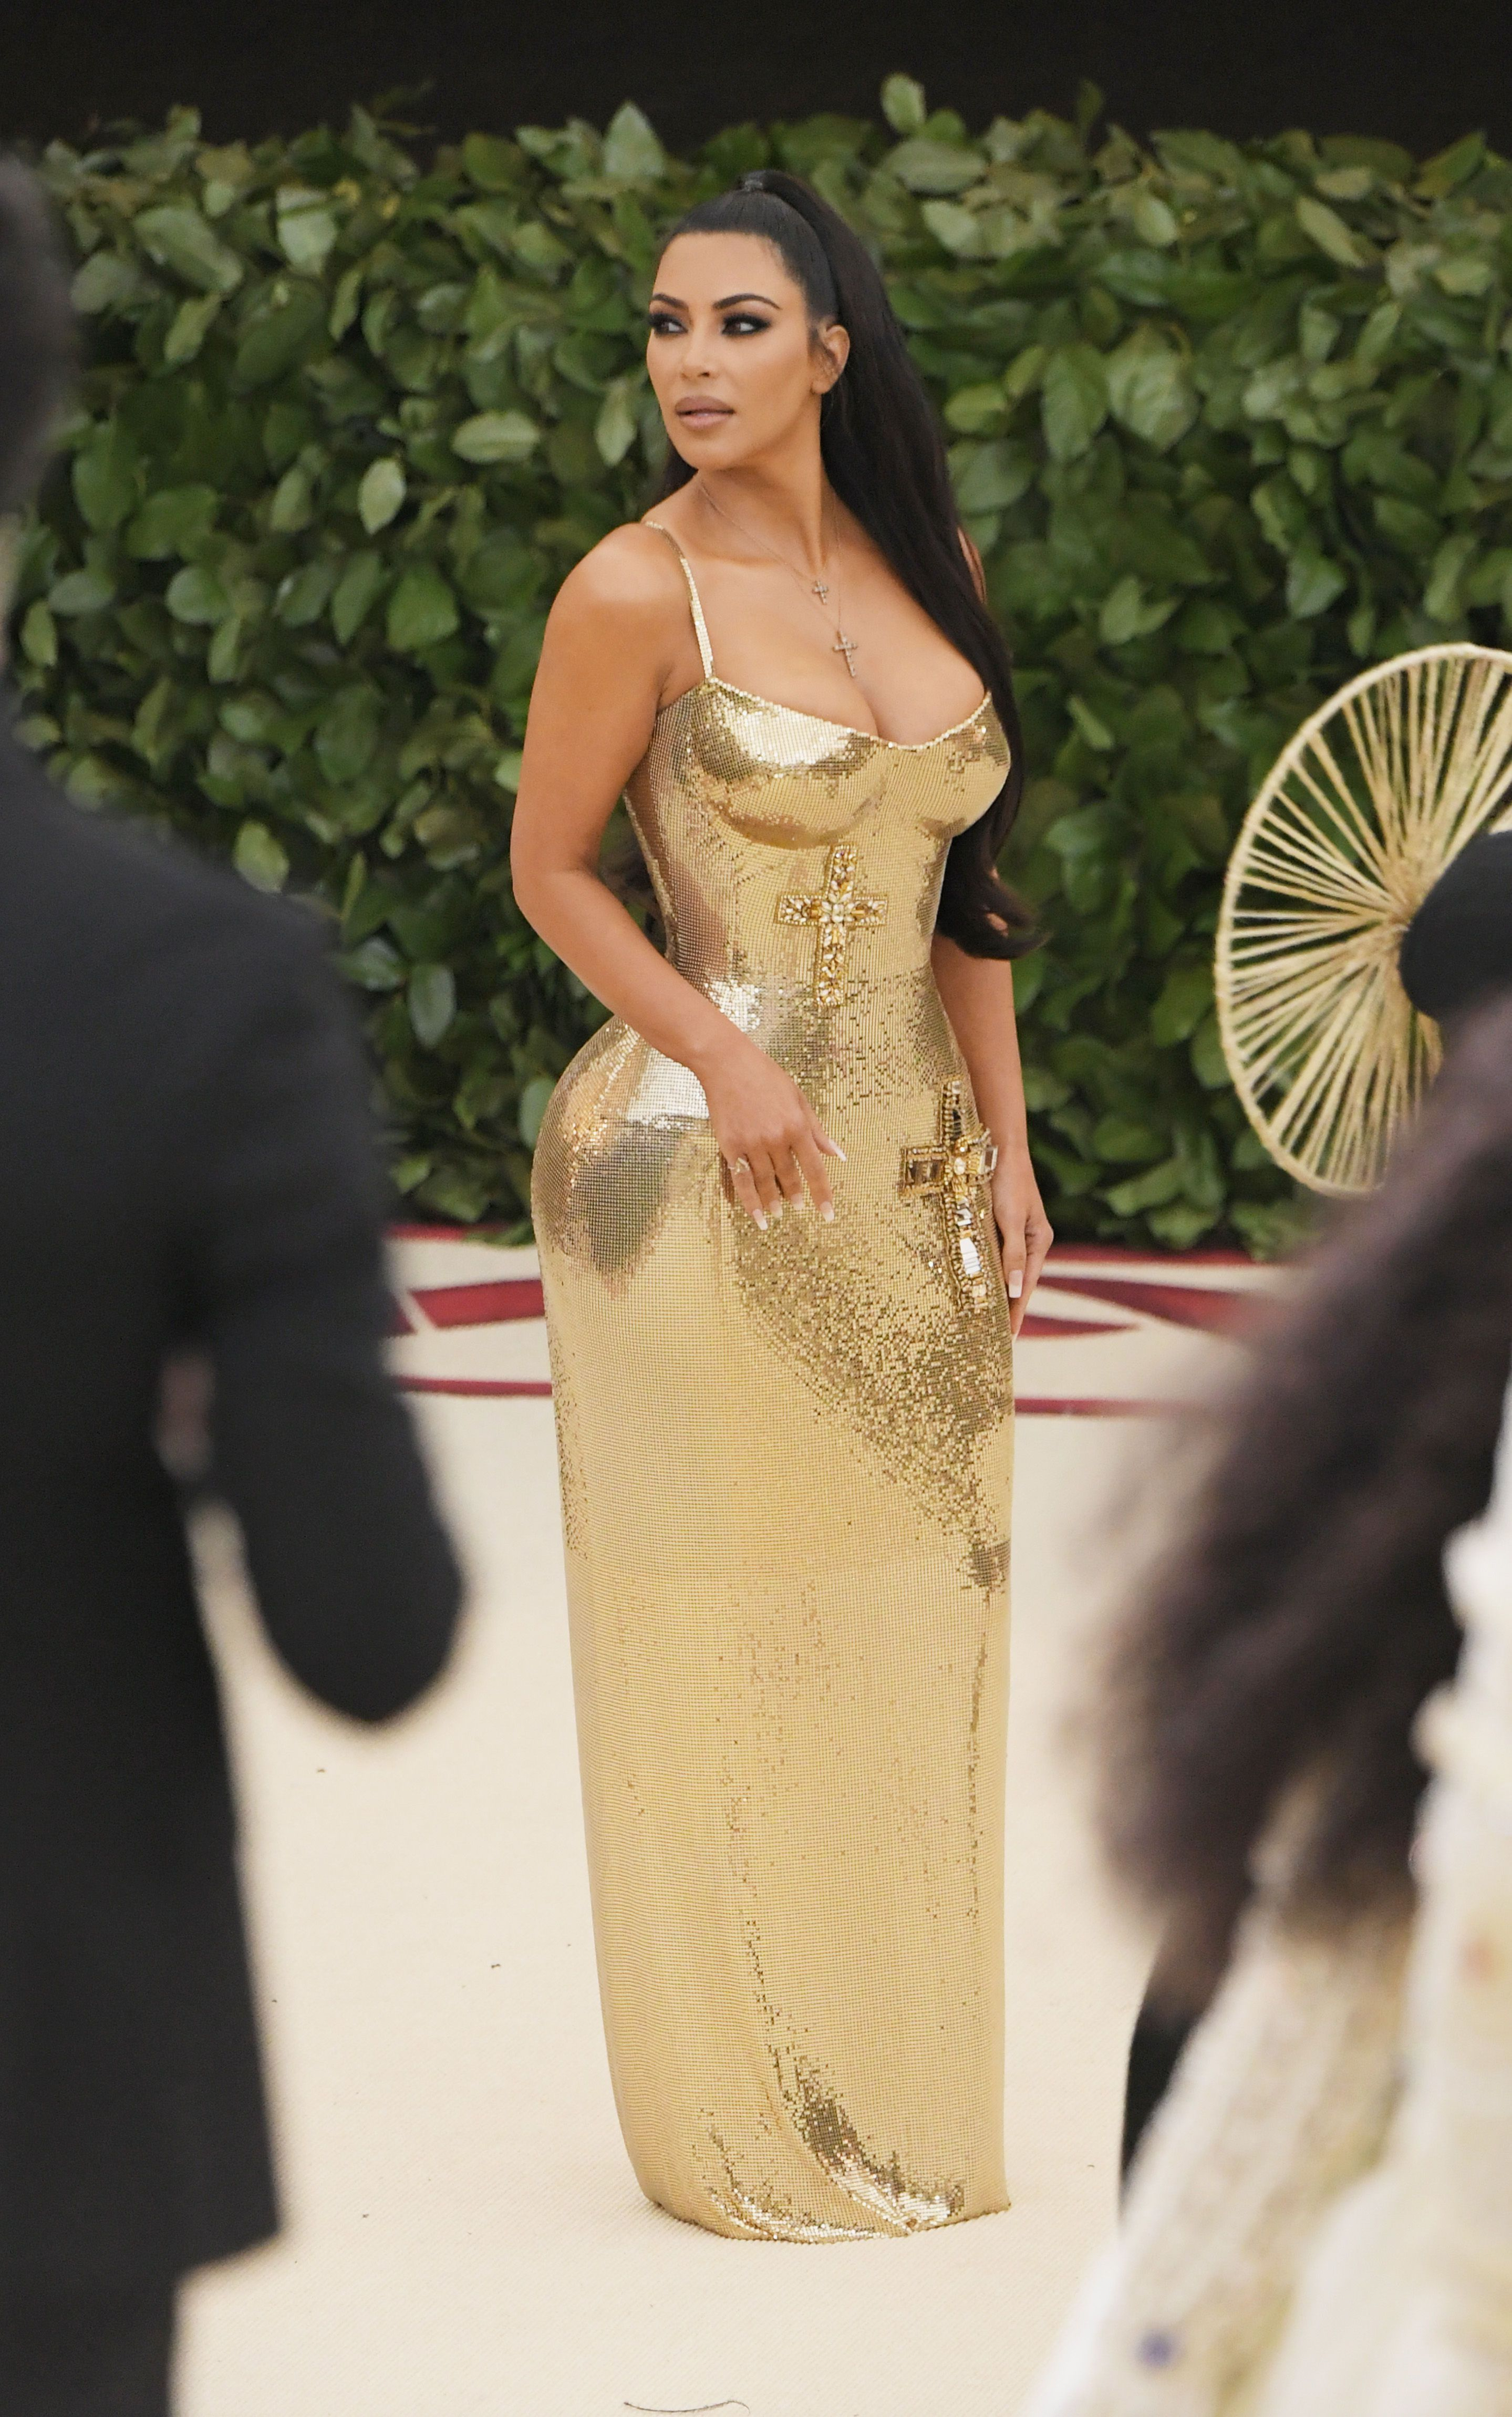 2be6cbc12c8 Kim Kardashian Hot Golden Dress (11 Pics)